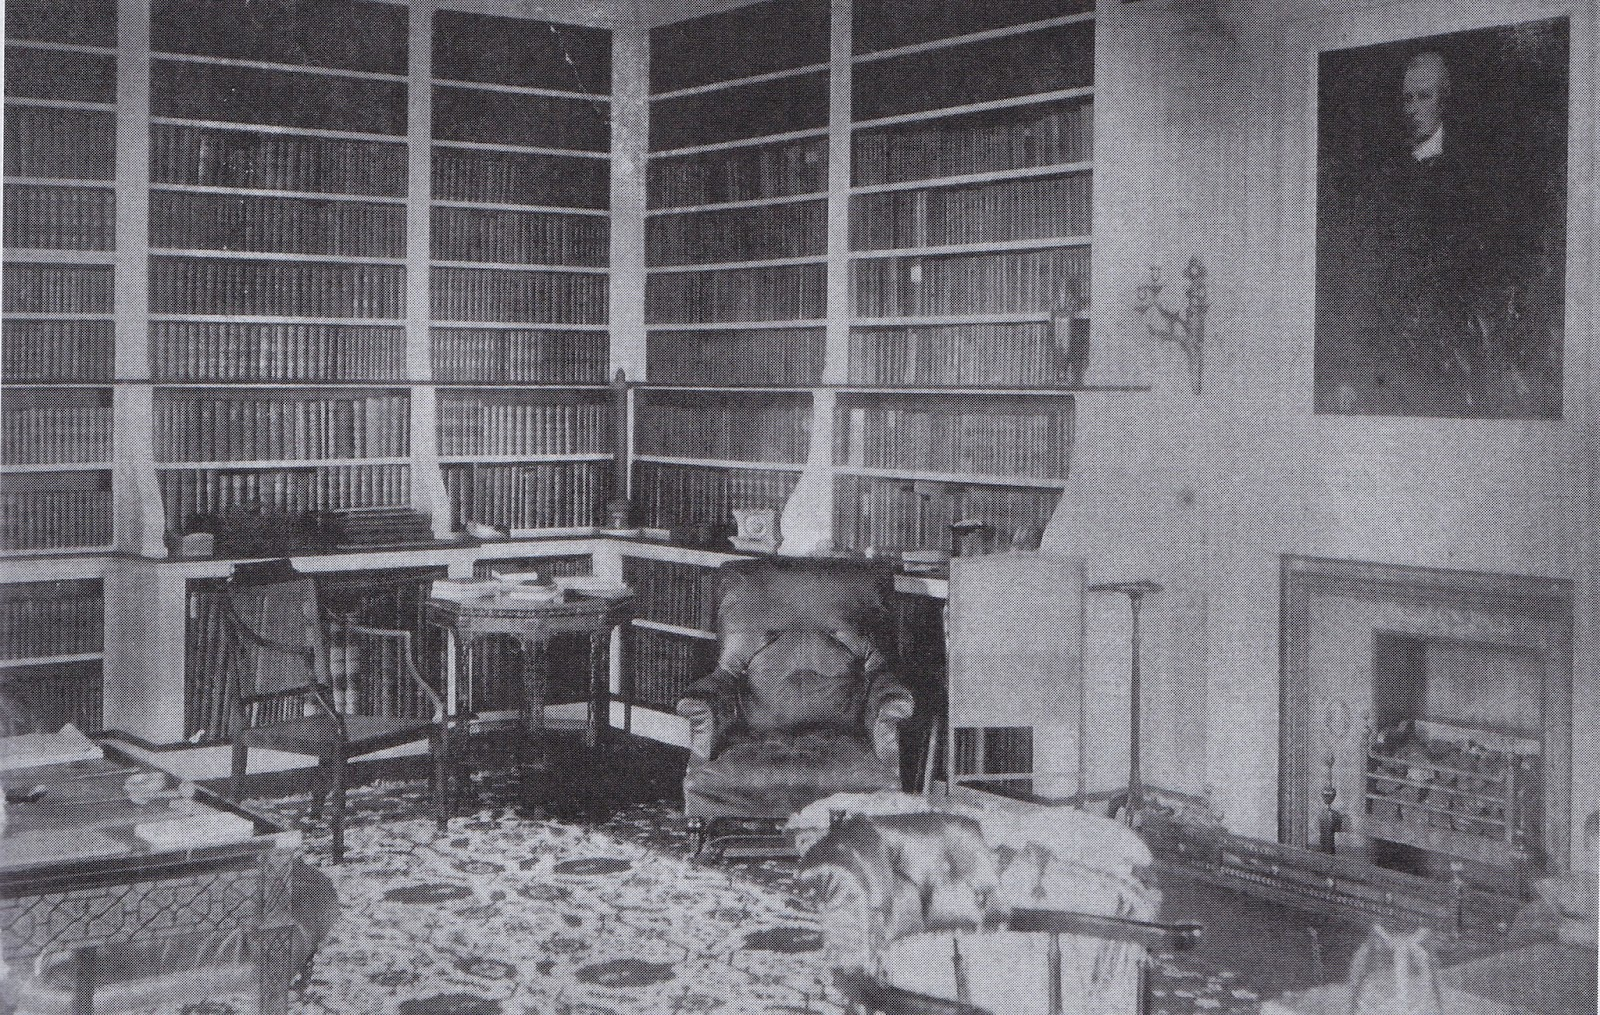 Figure 3: The Library at Hayes Place (early 20th century)